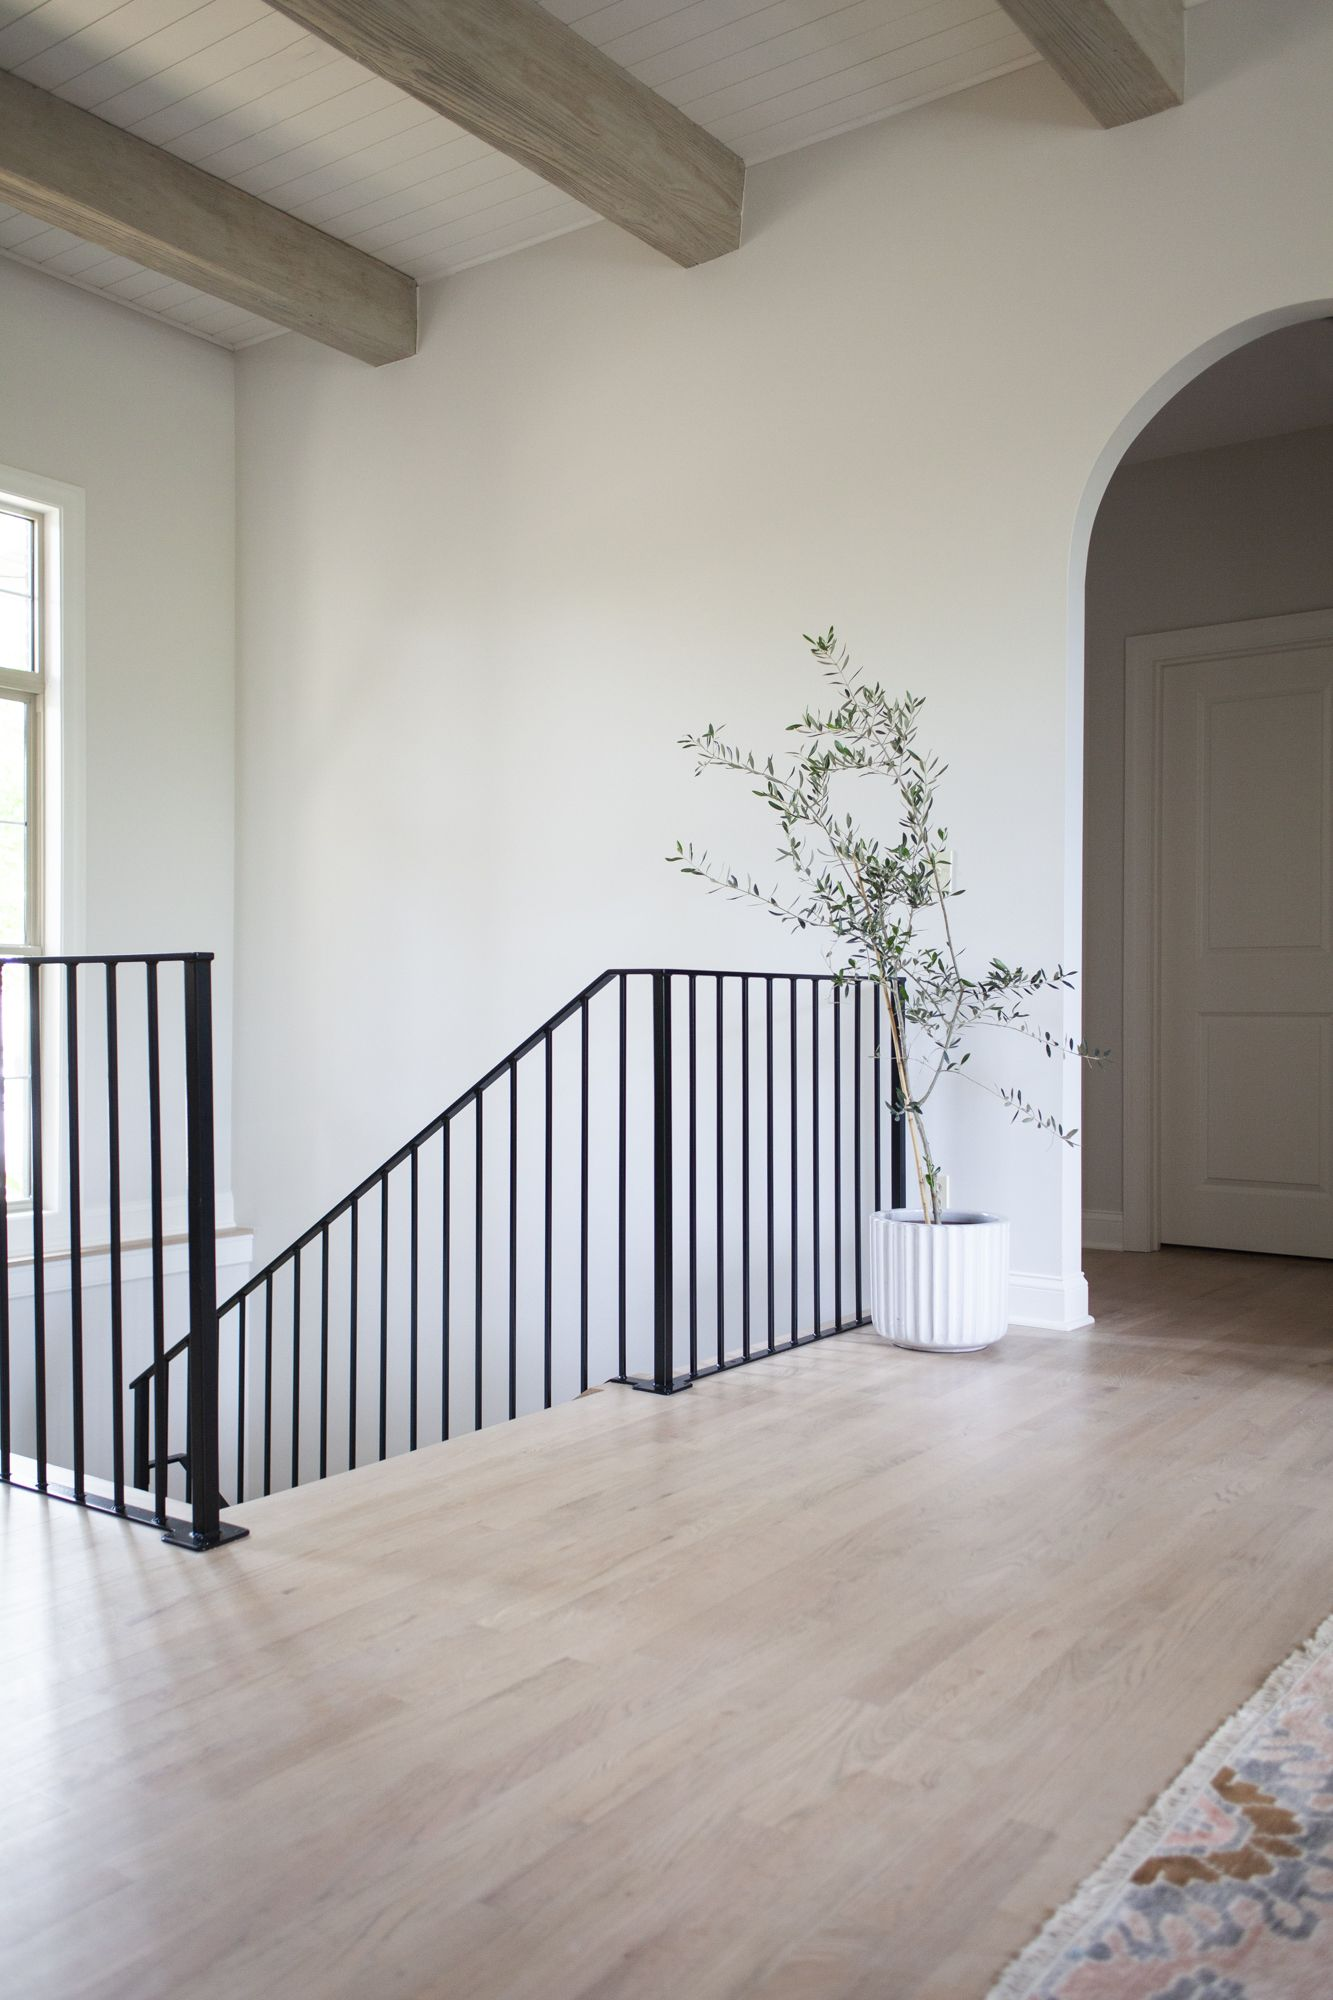 Step by Step Guide to Refinishing Outdated Wood Floors + Cloud White by Benjamin Moore trim color + Classic Gray by Benjamin Moore on the walls   Scout & Nimble